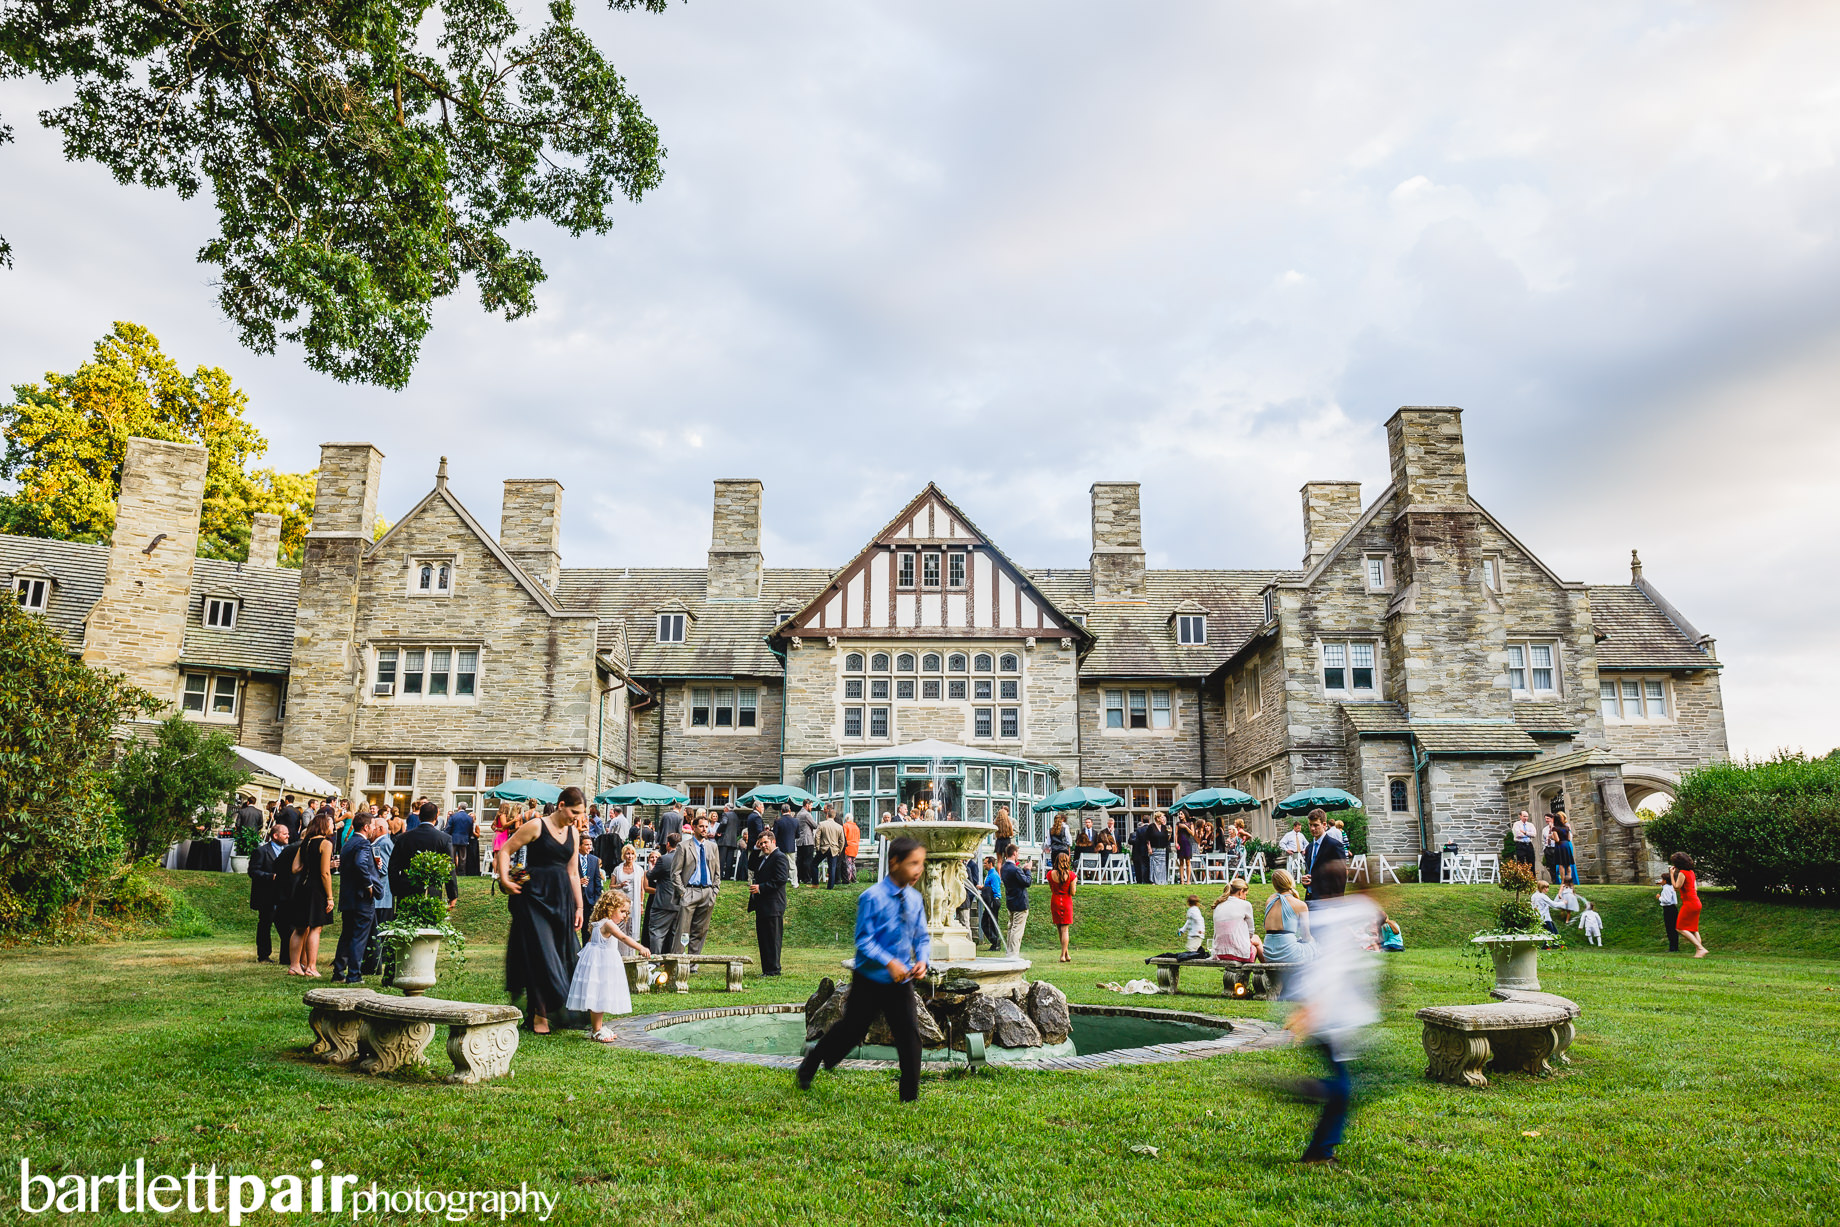 Greystone-Hall-Wedding-Venue-Cocktail-Hour-Location.jpg